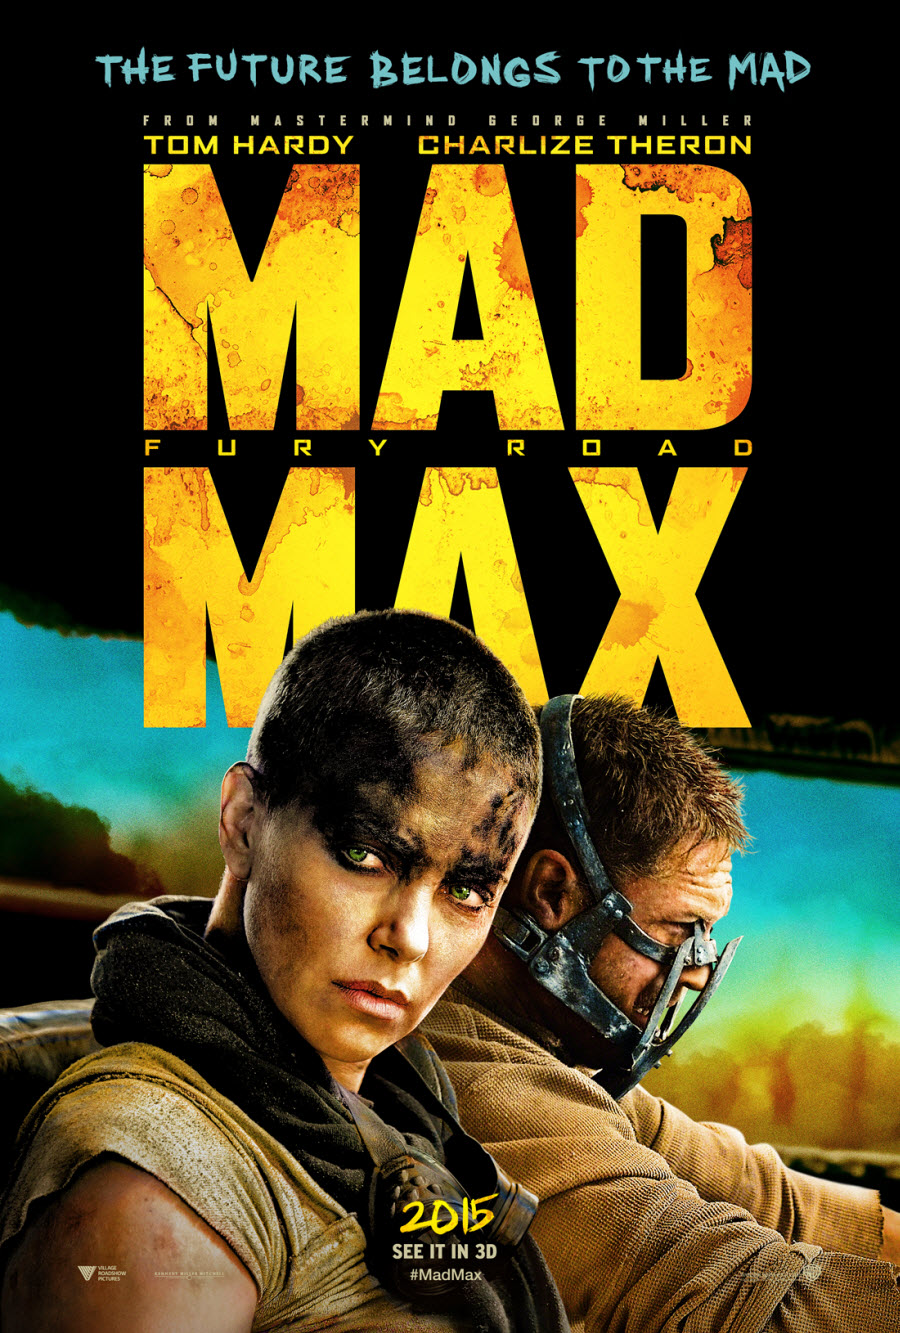 Fury Road review